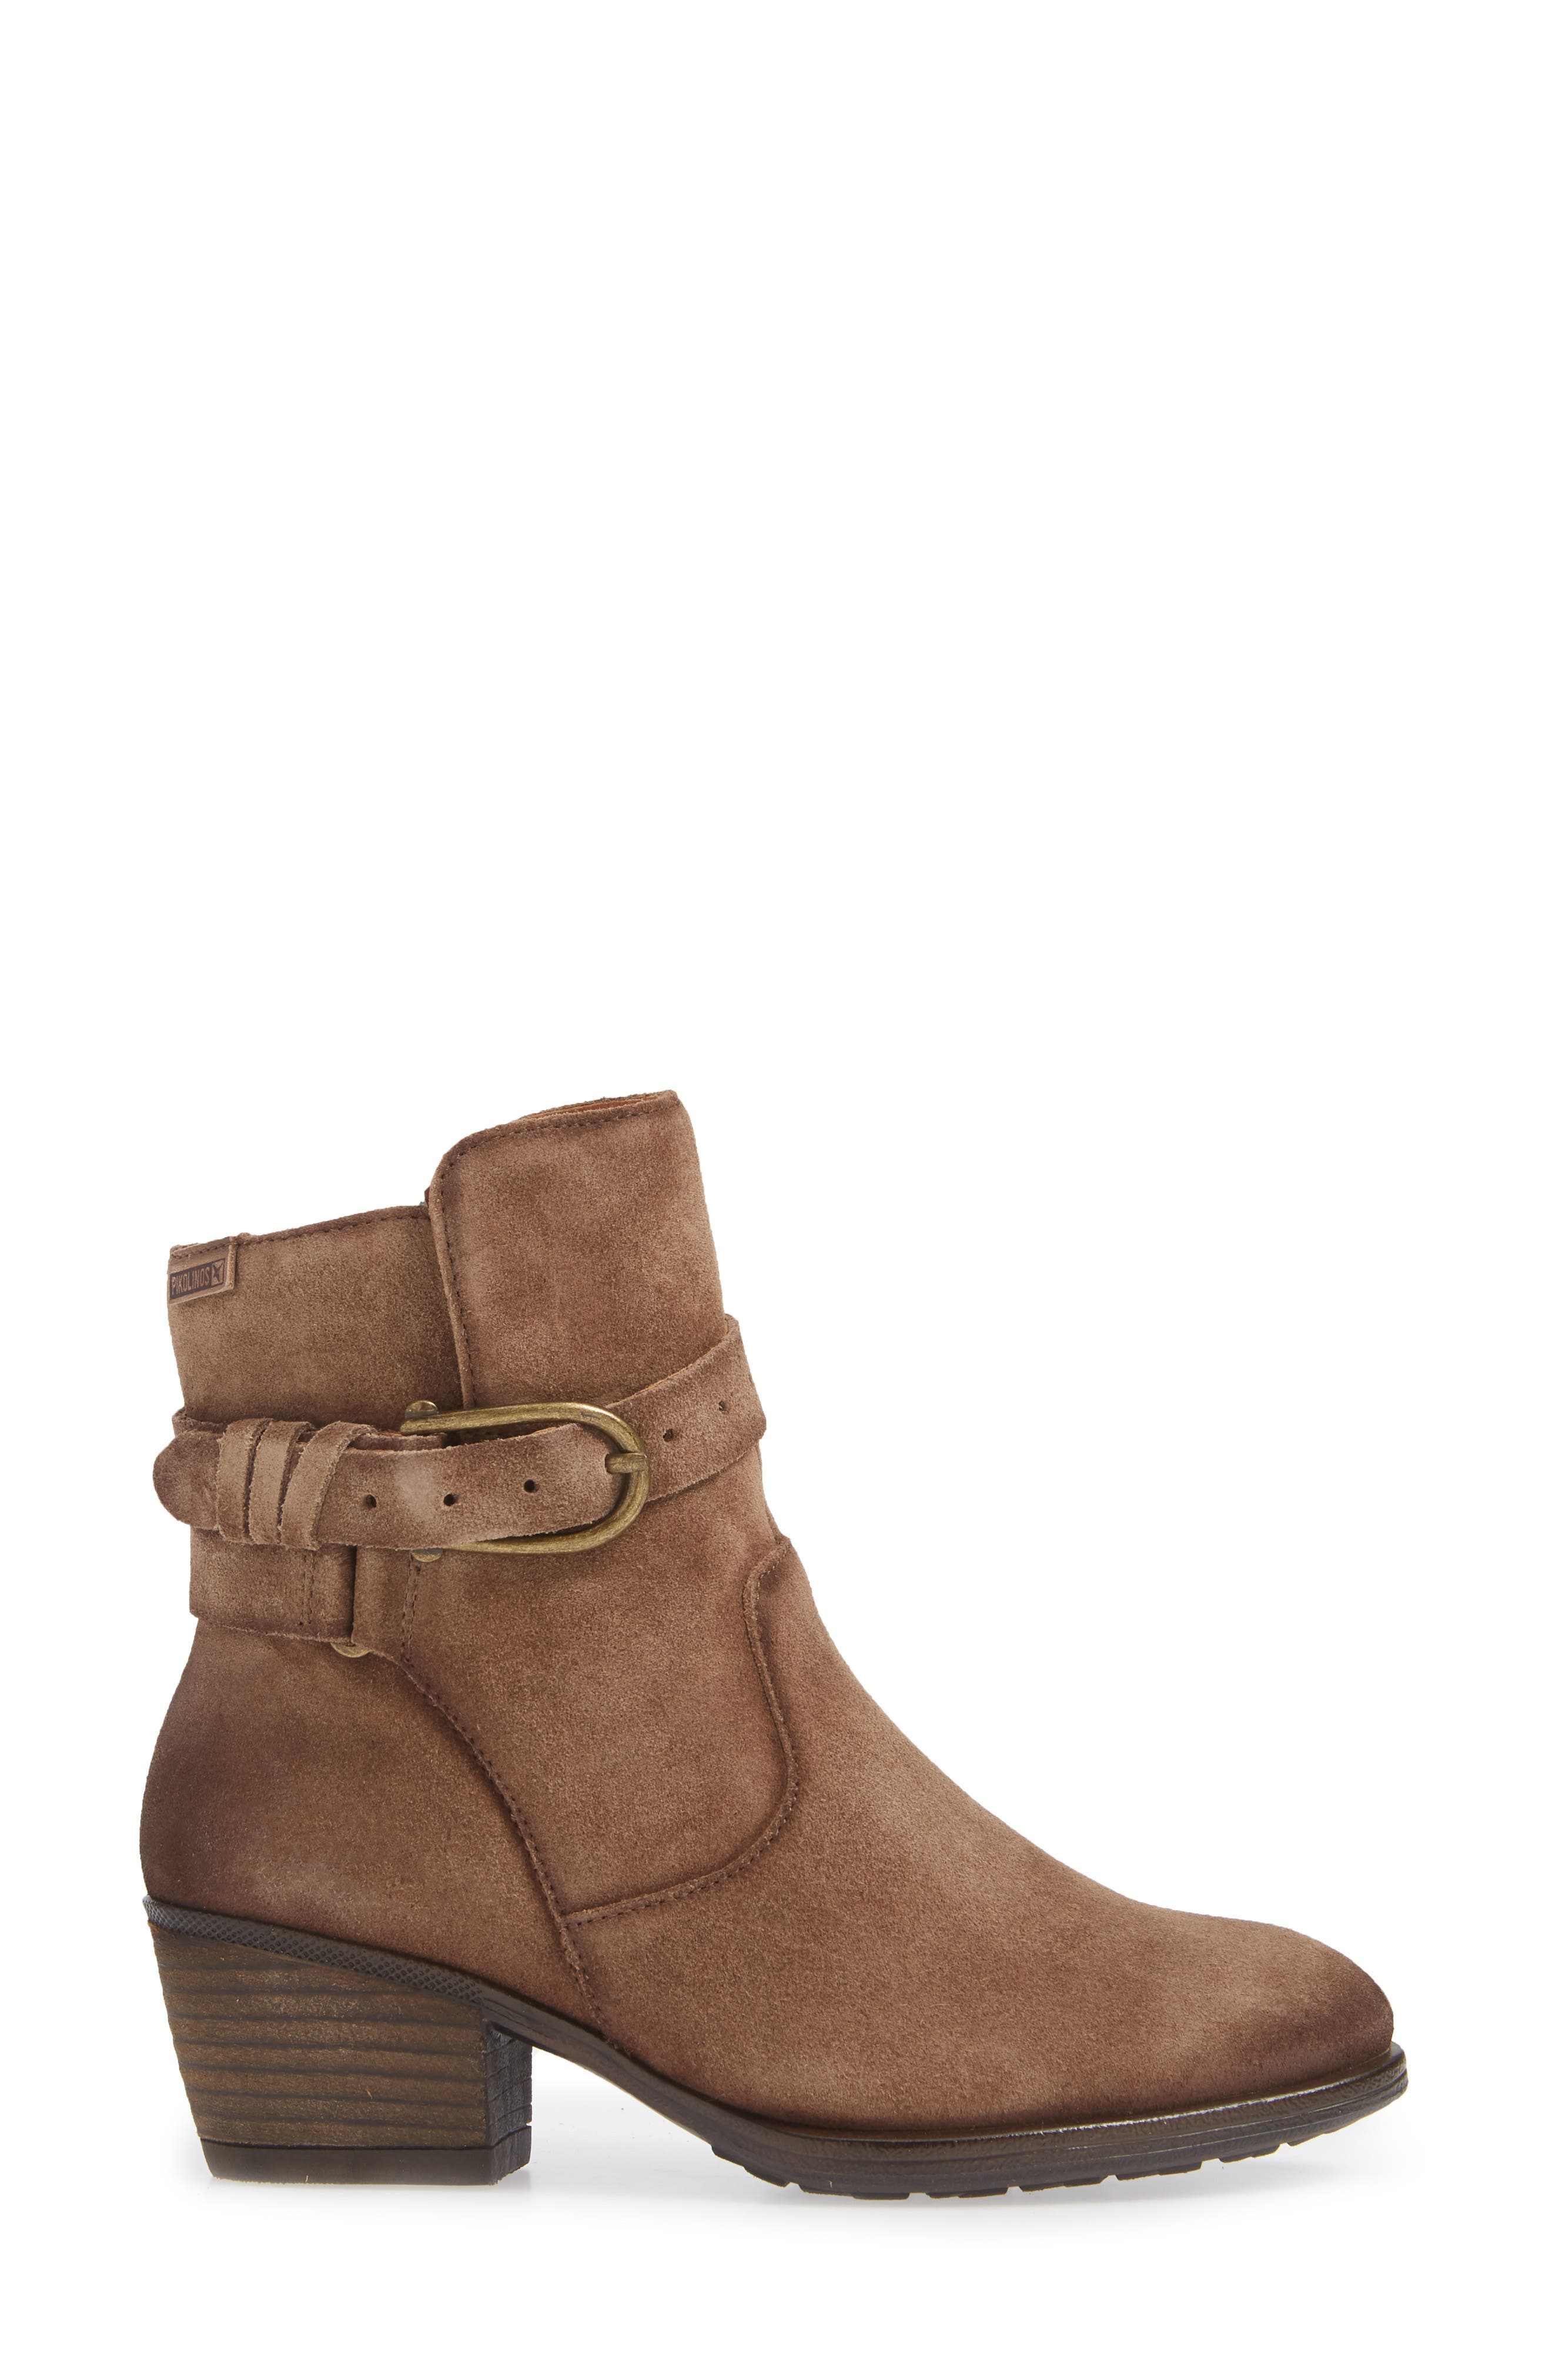 Baqueira Belted Bootie,                             Alternate thumbnail 3, color,                             STONE SUEDE